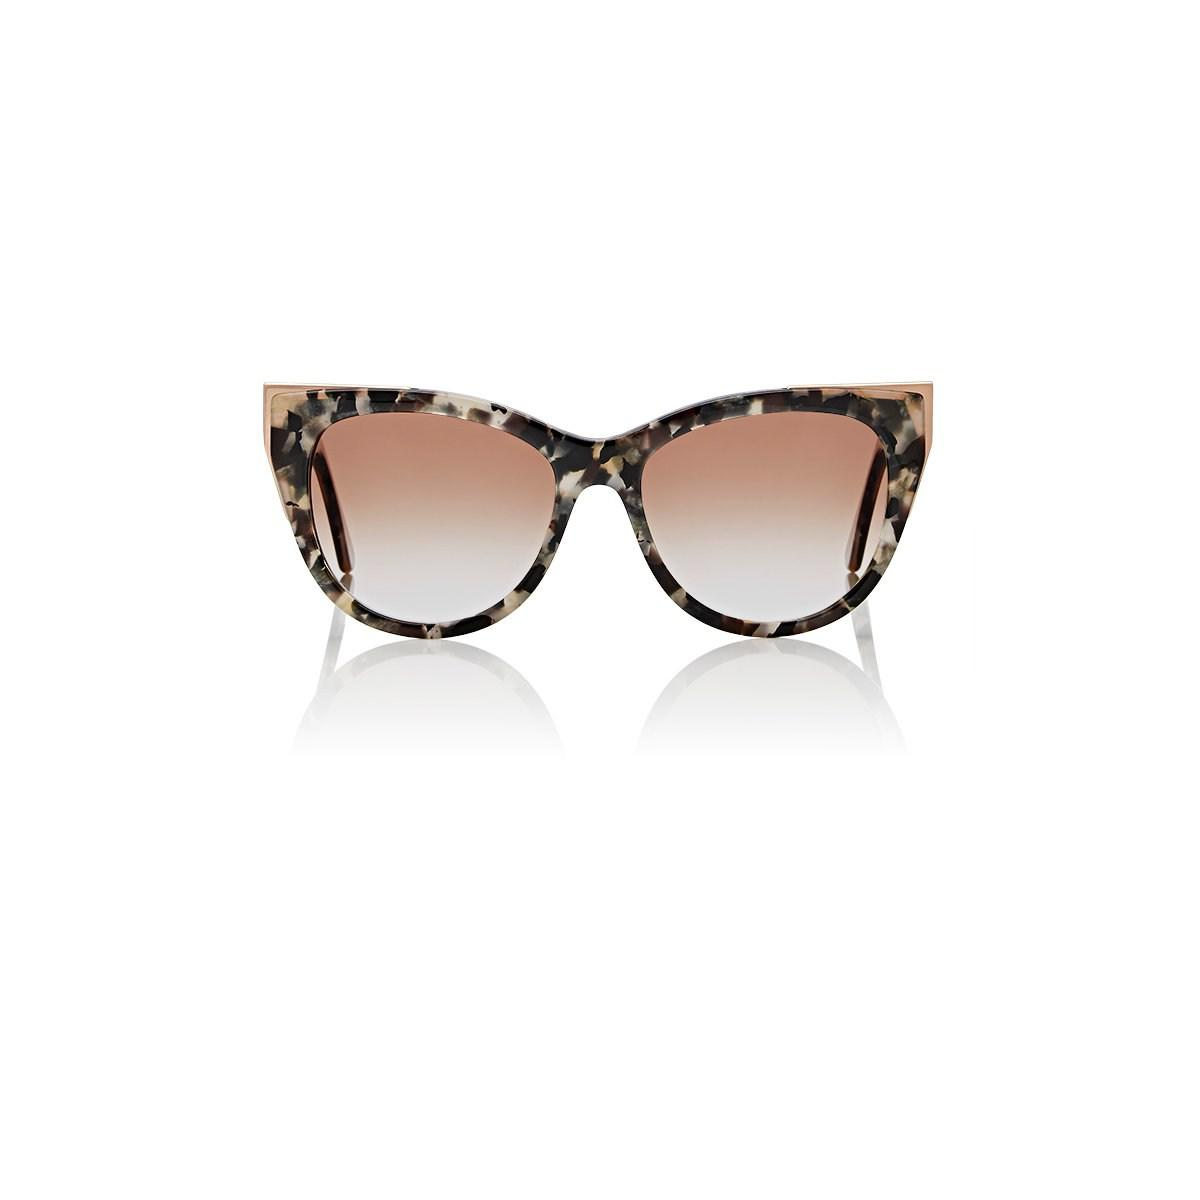 9dd8cd7547 Lyst - Thierry Lasry Epiphany Sunglasses in Brown